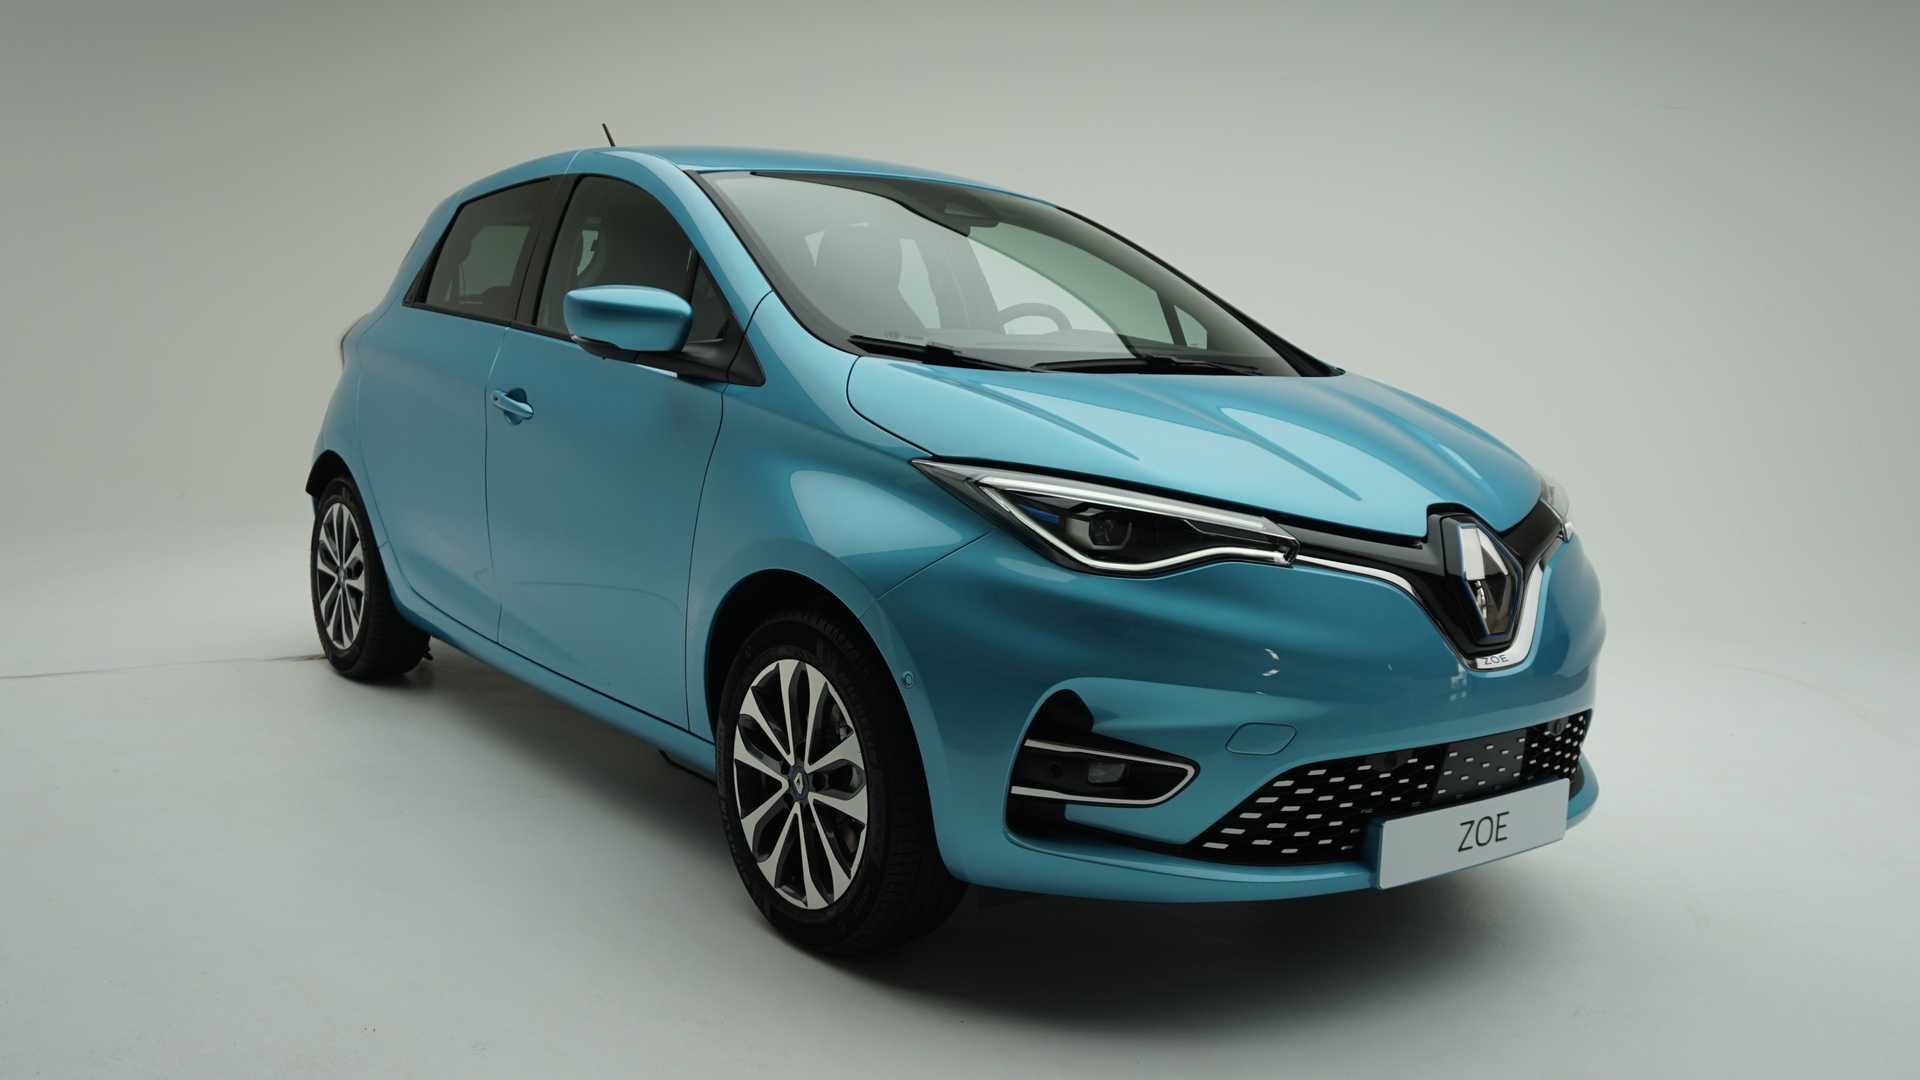 2020 Renault Zoe Unveiled With Bigger Battery More Tech